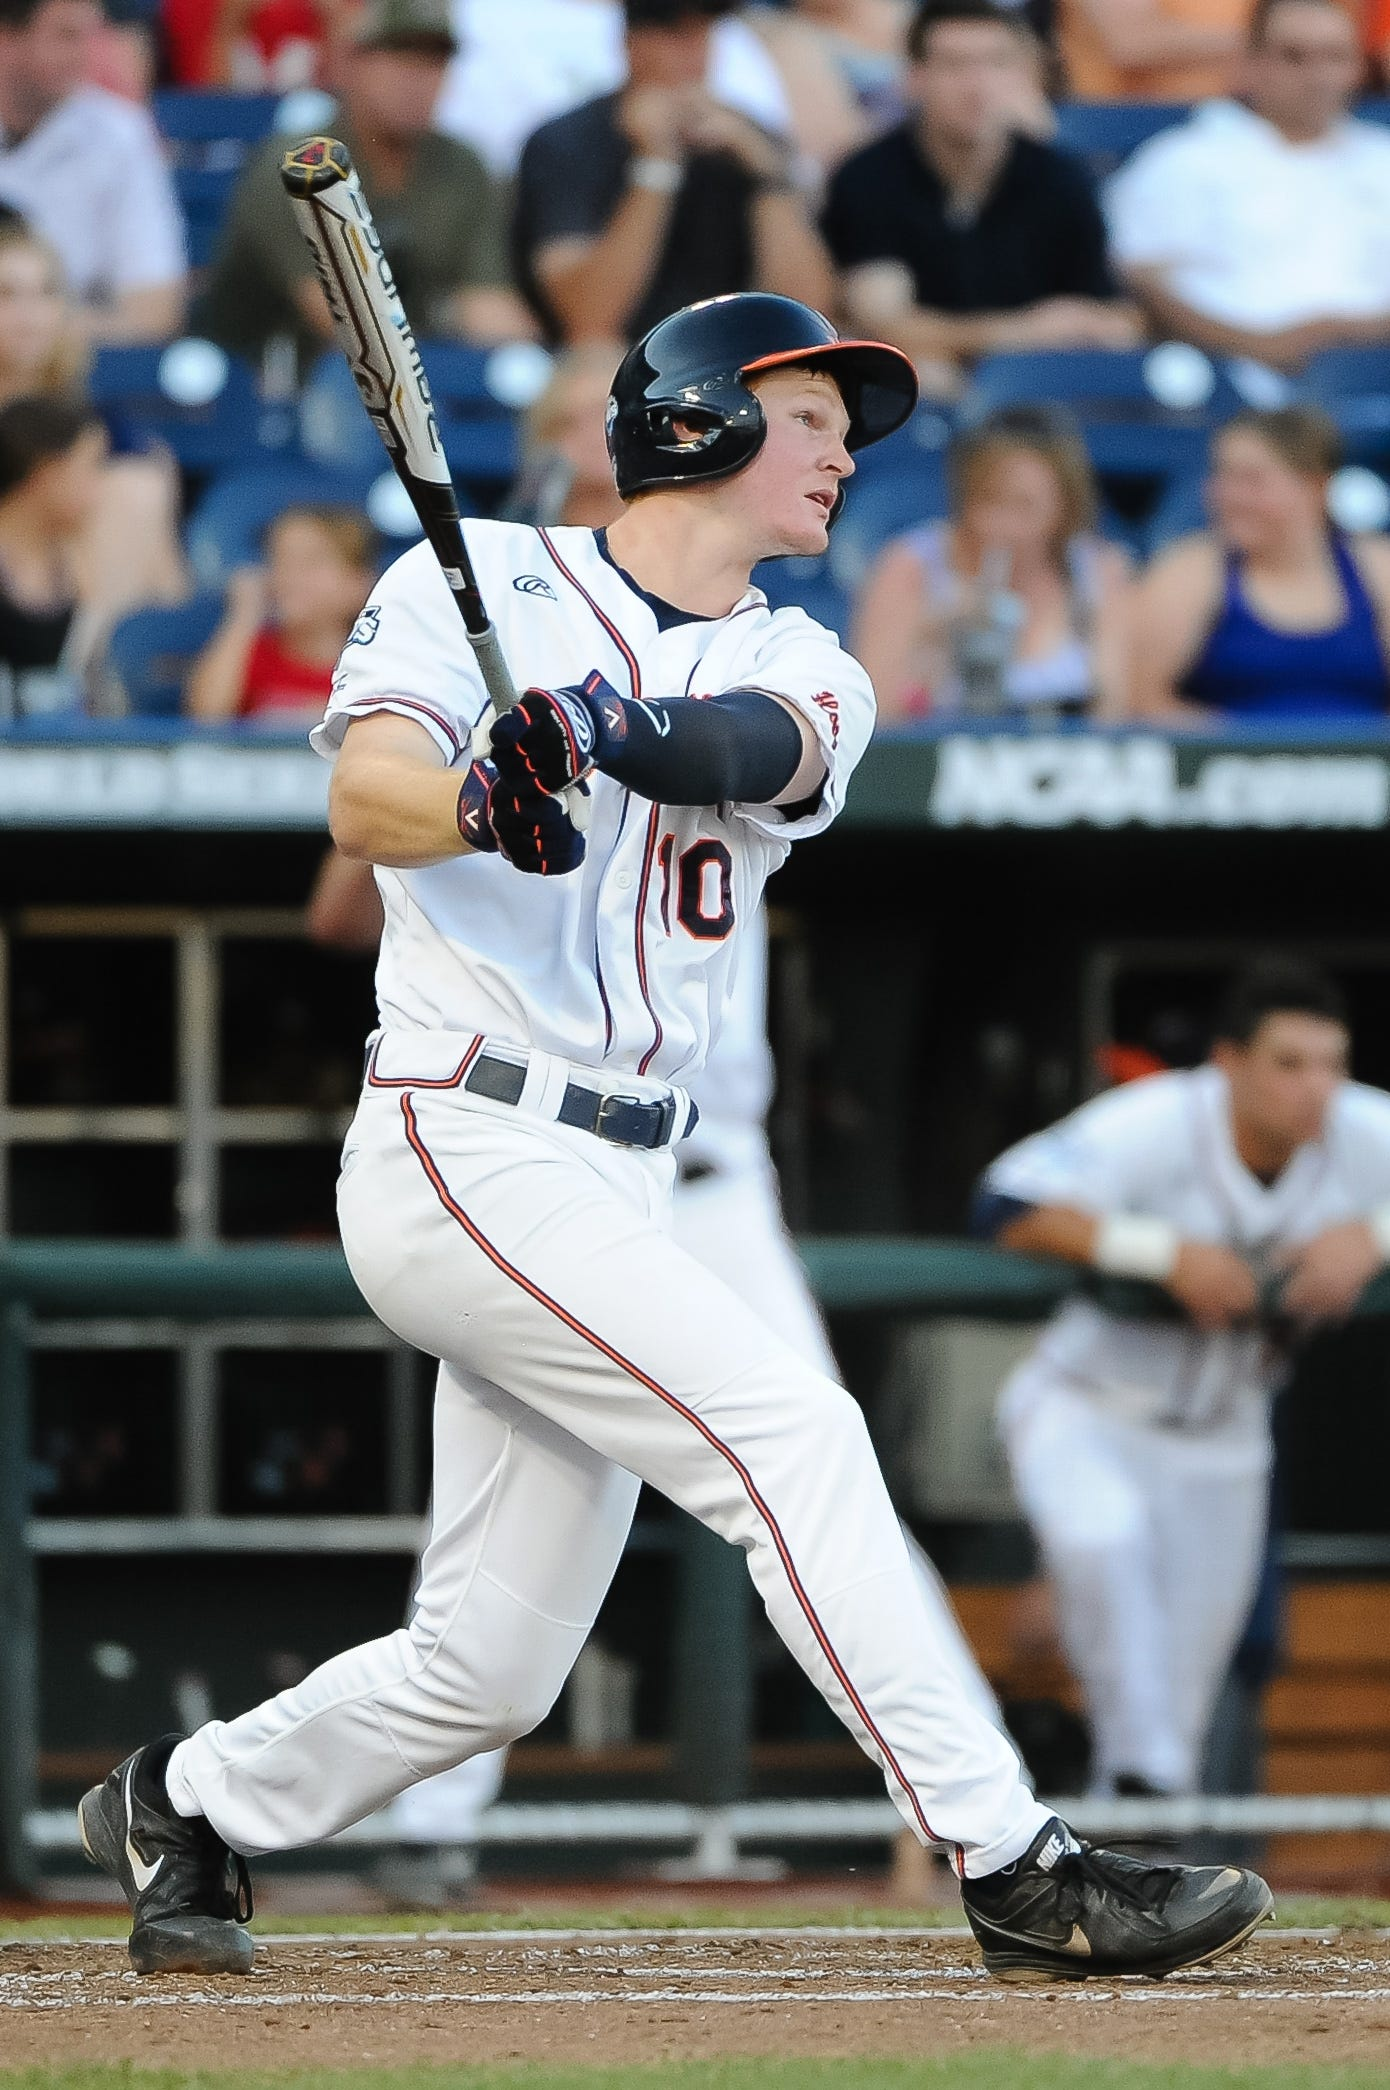 Arizona Diamondbacks draft 1B Pavin Smith with 7th overall pick